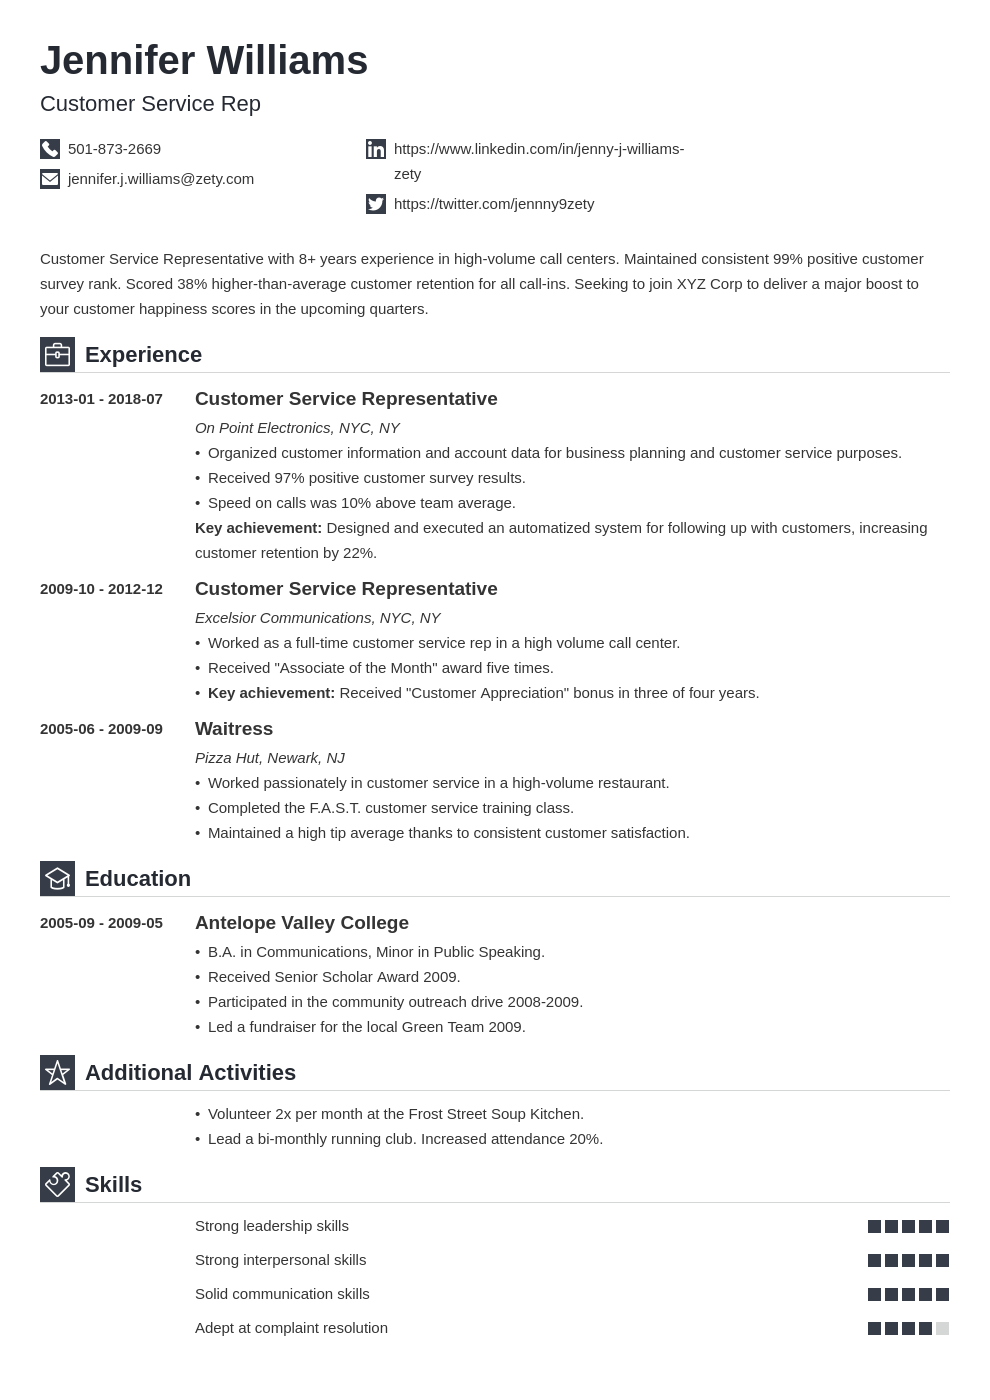 Strong points in resume blog post writers for hire usa